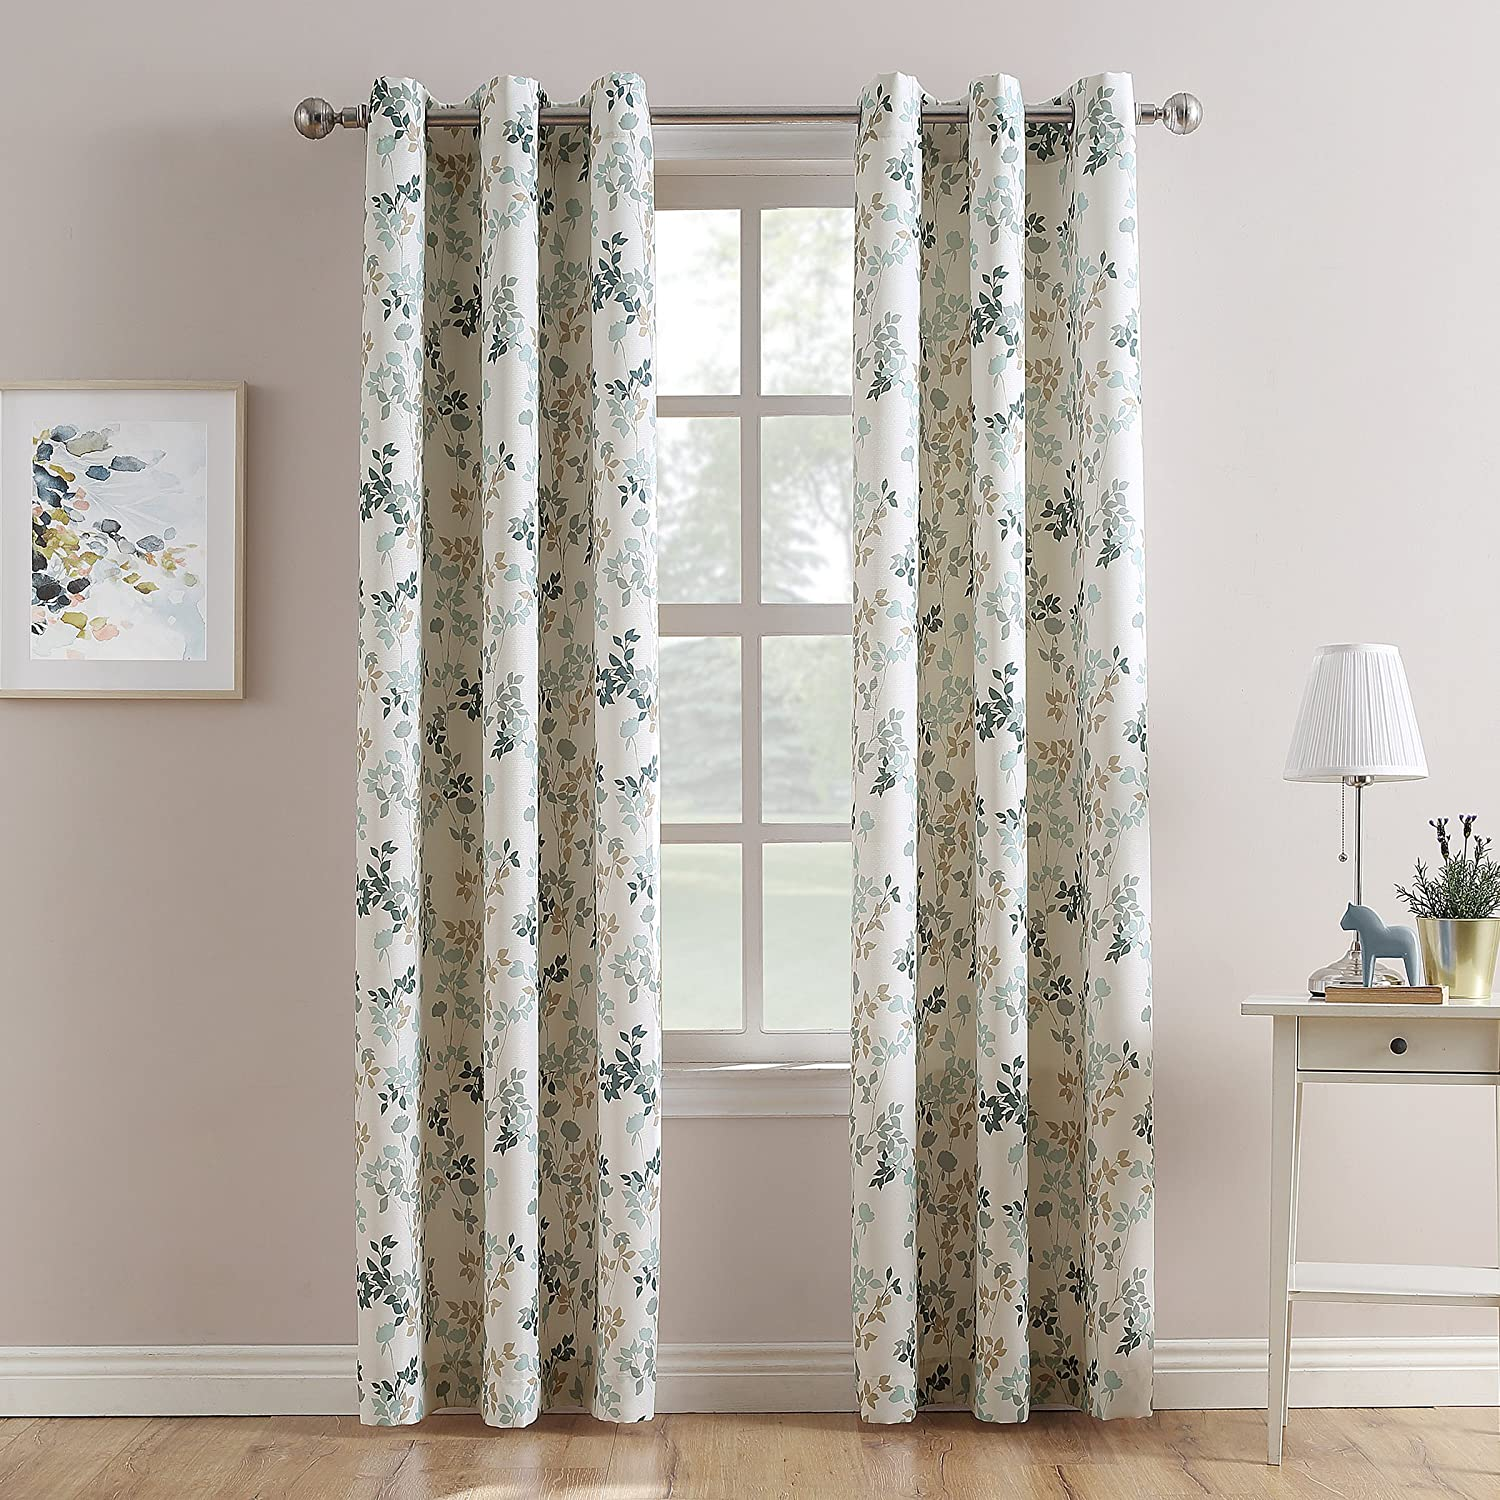 Amazon Com No 918 Roelyn Floral Print Casual Textured Grommet Curtain Panel 48 X 63 Harbor Blue Home Kitchen